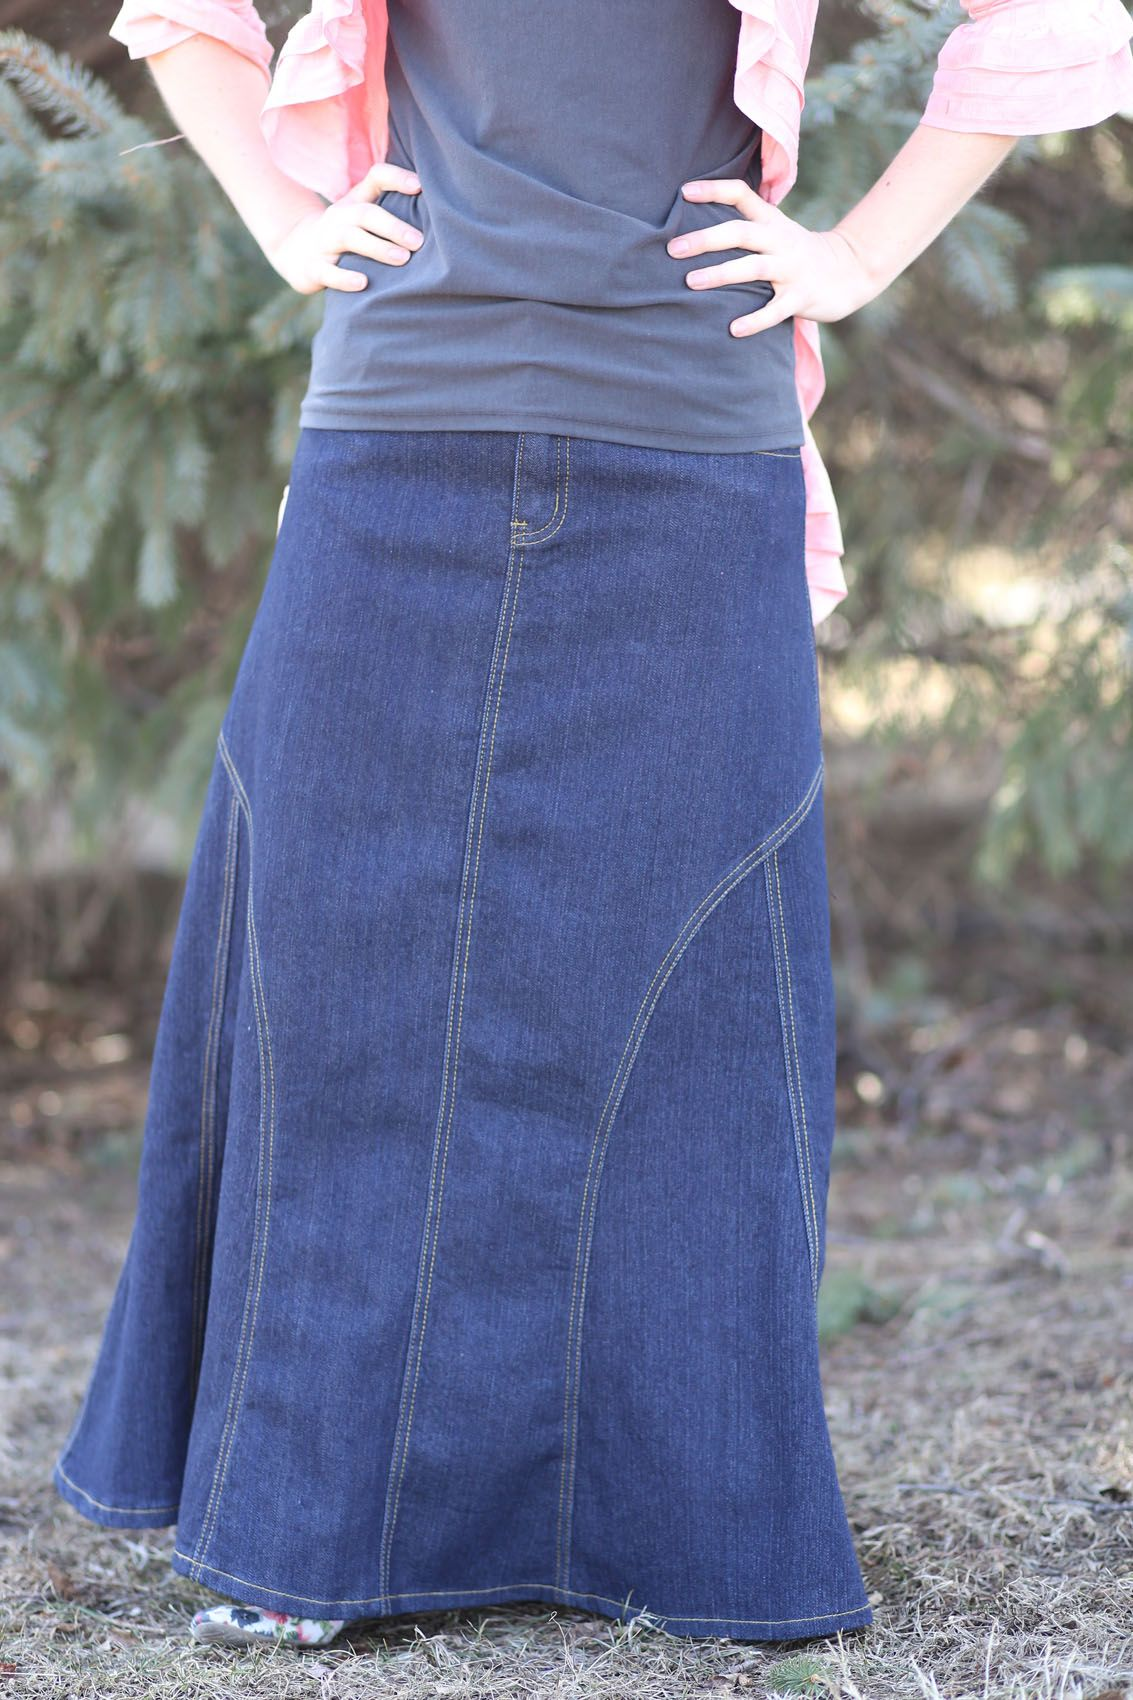 Darling Denim Indigo Modest Skirt | Long Jean Skirt Plus Size 20 ...